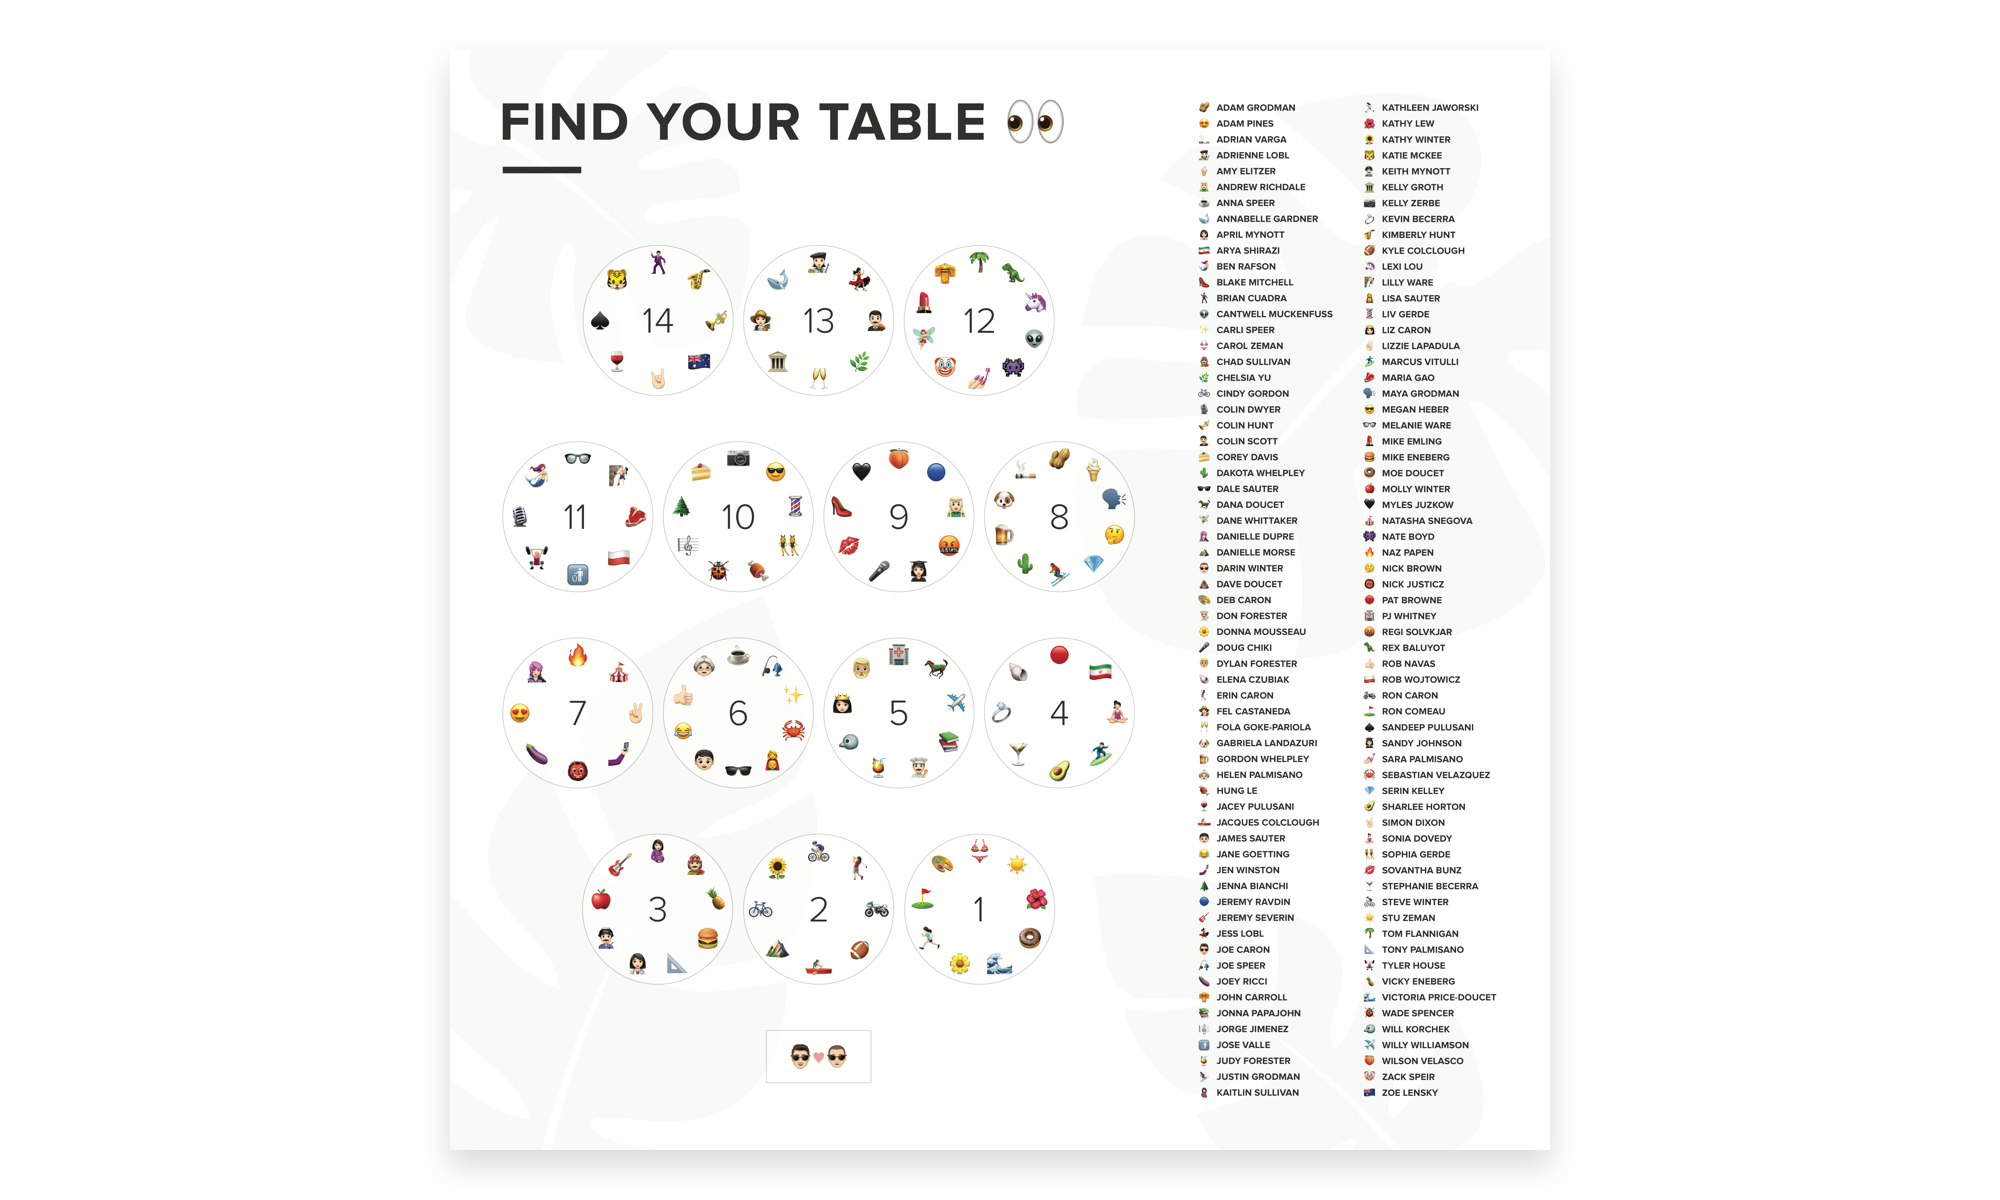 The now-famous emoji seating chart featured a legend of guests and a map of the table arrangement. Guest names, arranged alphabetically, were assigned a single emoji that was assigned to one of the tables.